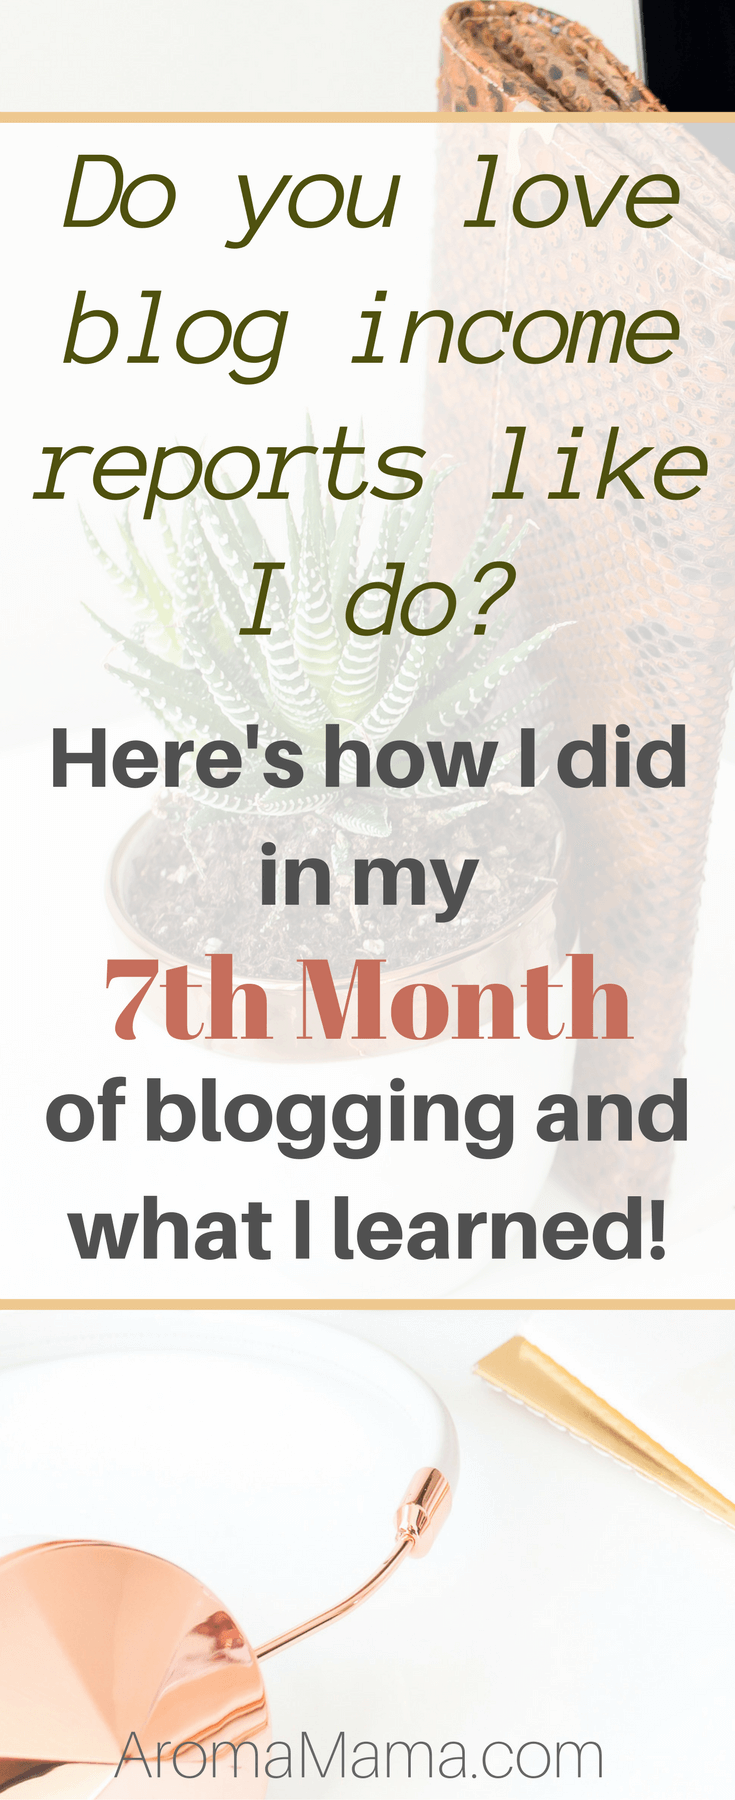 Do you have a blog? Read on for blogging tips and find out what is working for the Aroma Mama blog and what isn't. This is Aroma Mama's blog stats and income report for October 2017, her seventh month of blogging!